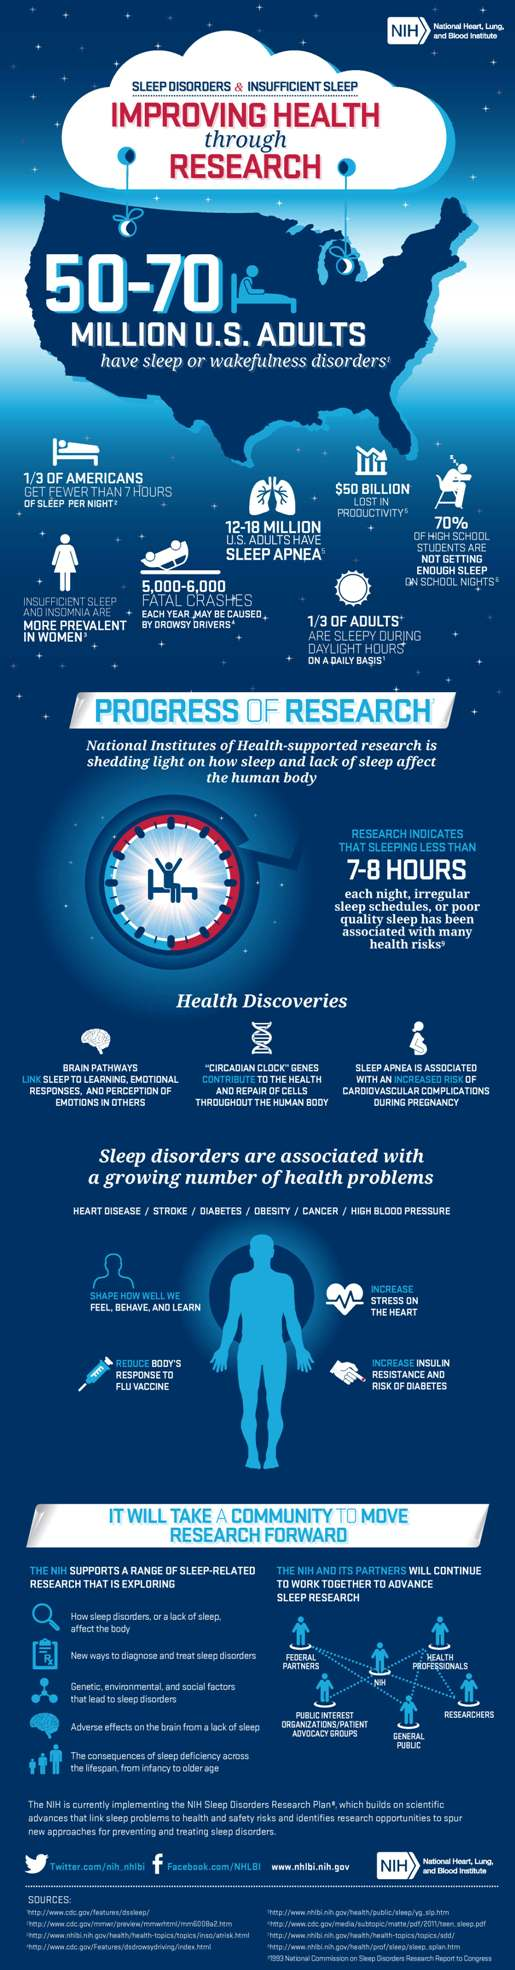 Source:  NHLBI.NIH.GOV